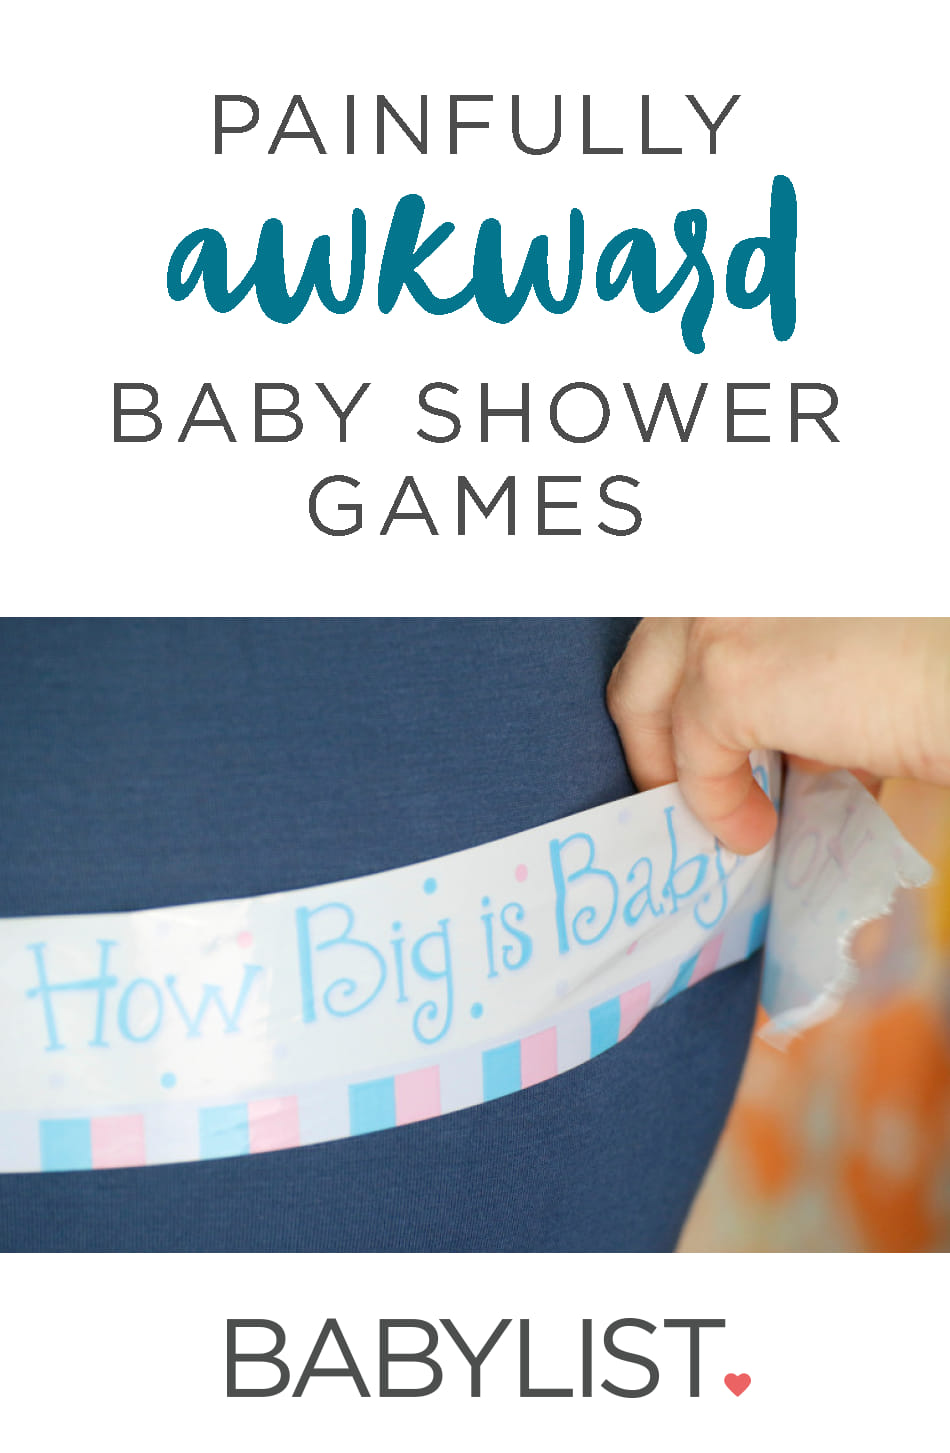 Baby Shower Games that are Painfully Awkward